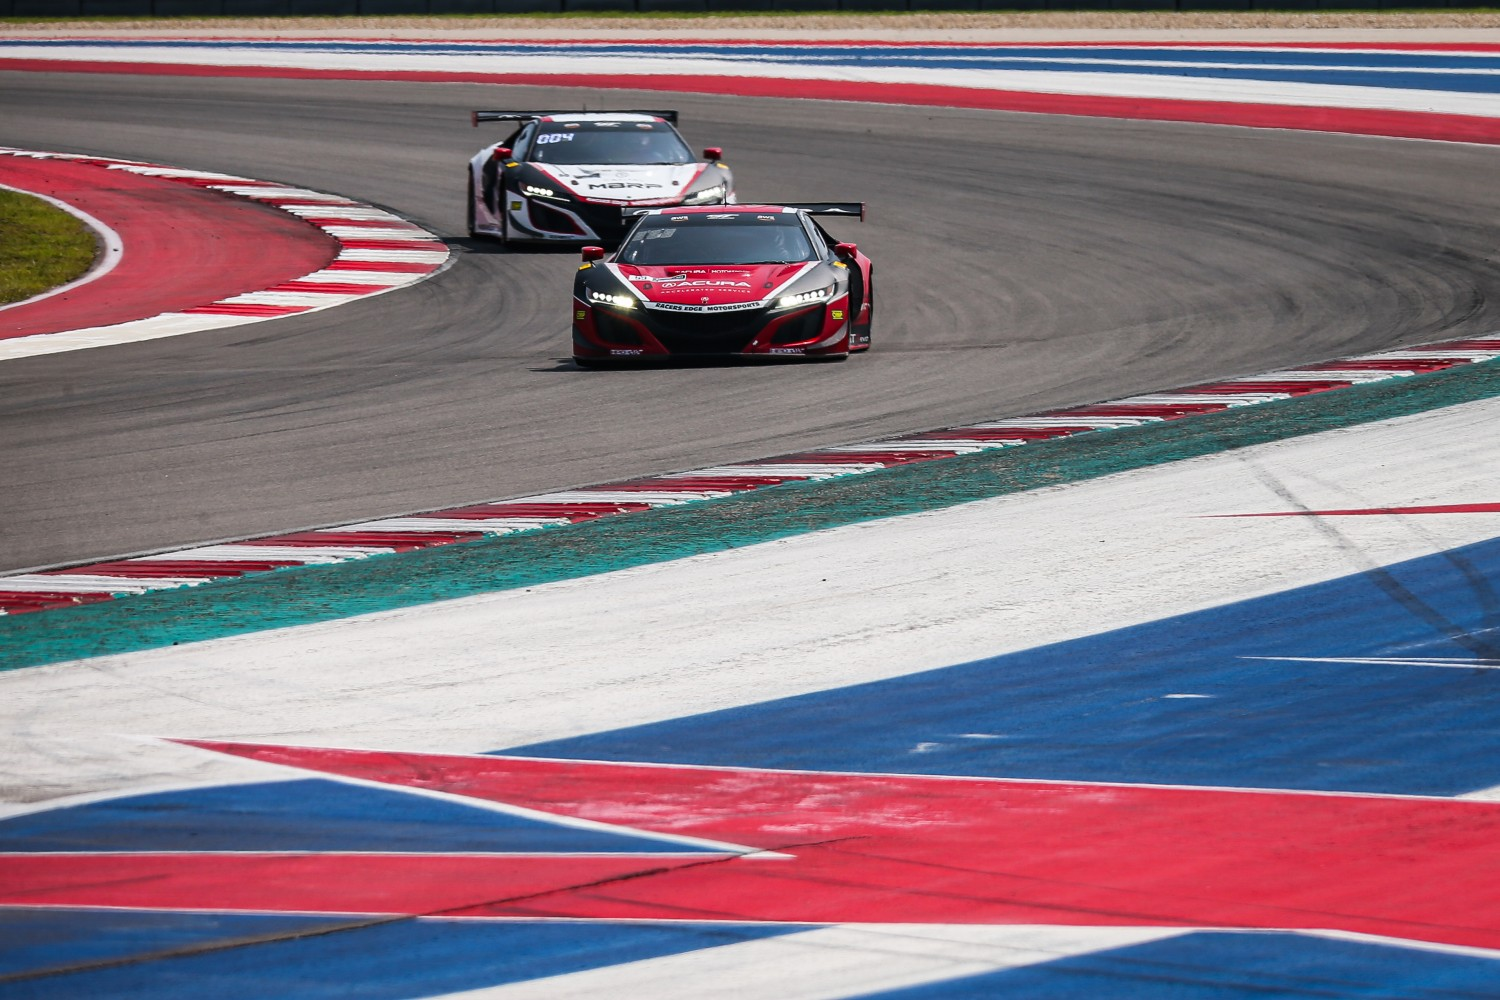 #63 Mercedes-AMG GT3 of David Askew and Ryan Dalziel, DXDT Racing, GT3 Pro-Am, SRO America, Circuit of the Americas, Austin TX, September 2020.  | Sarah Weeks/SRO